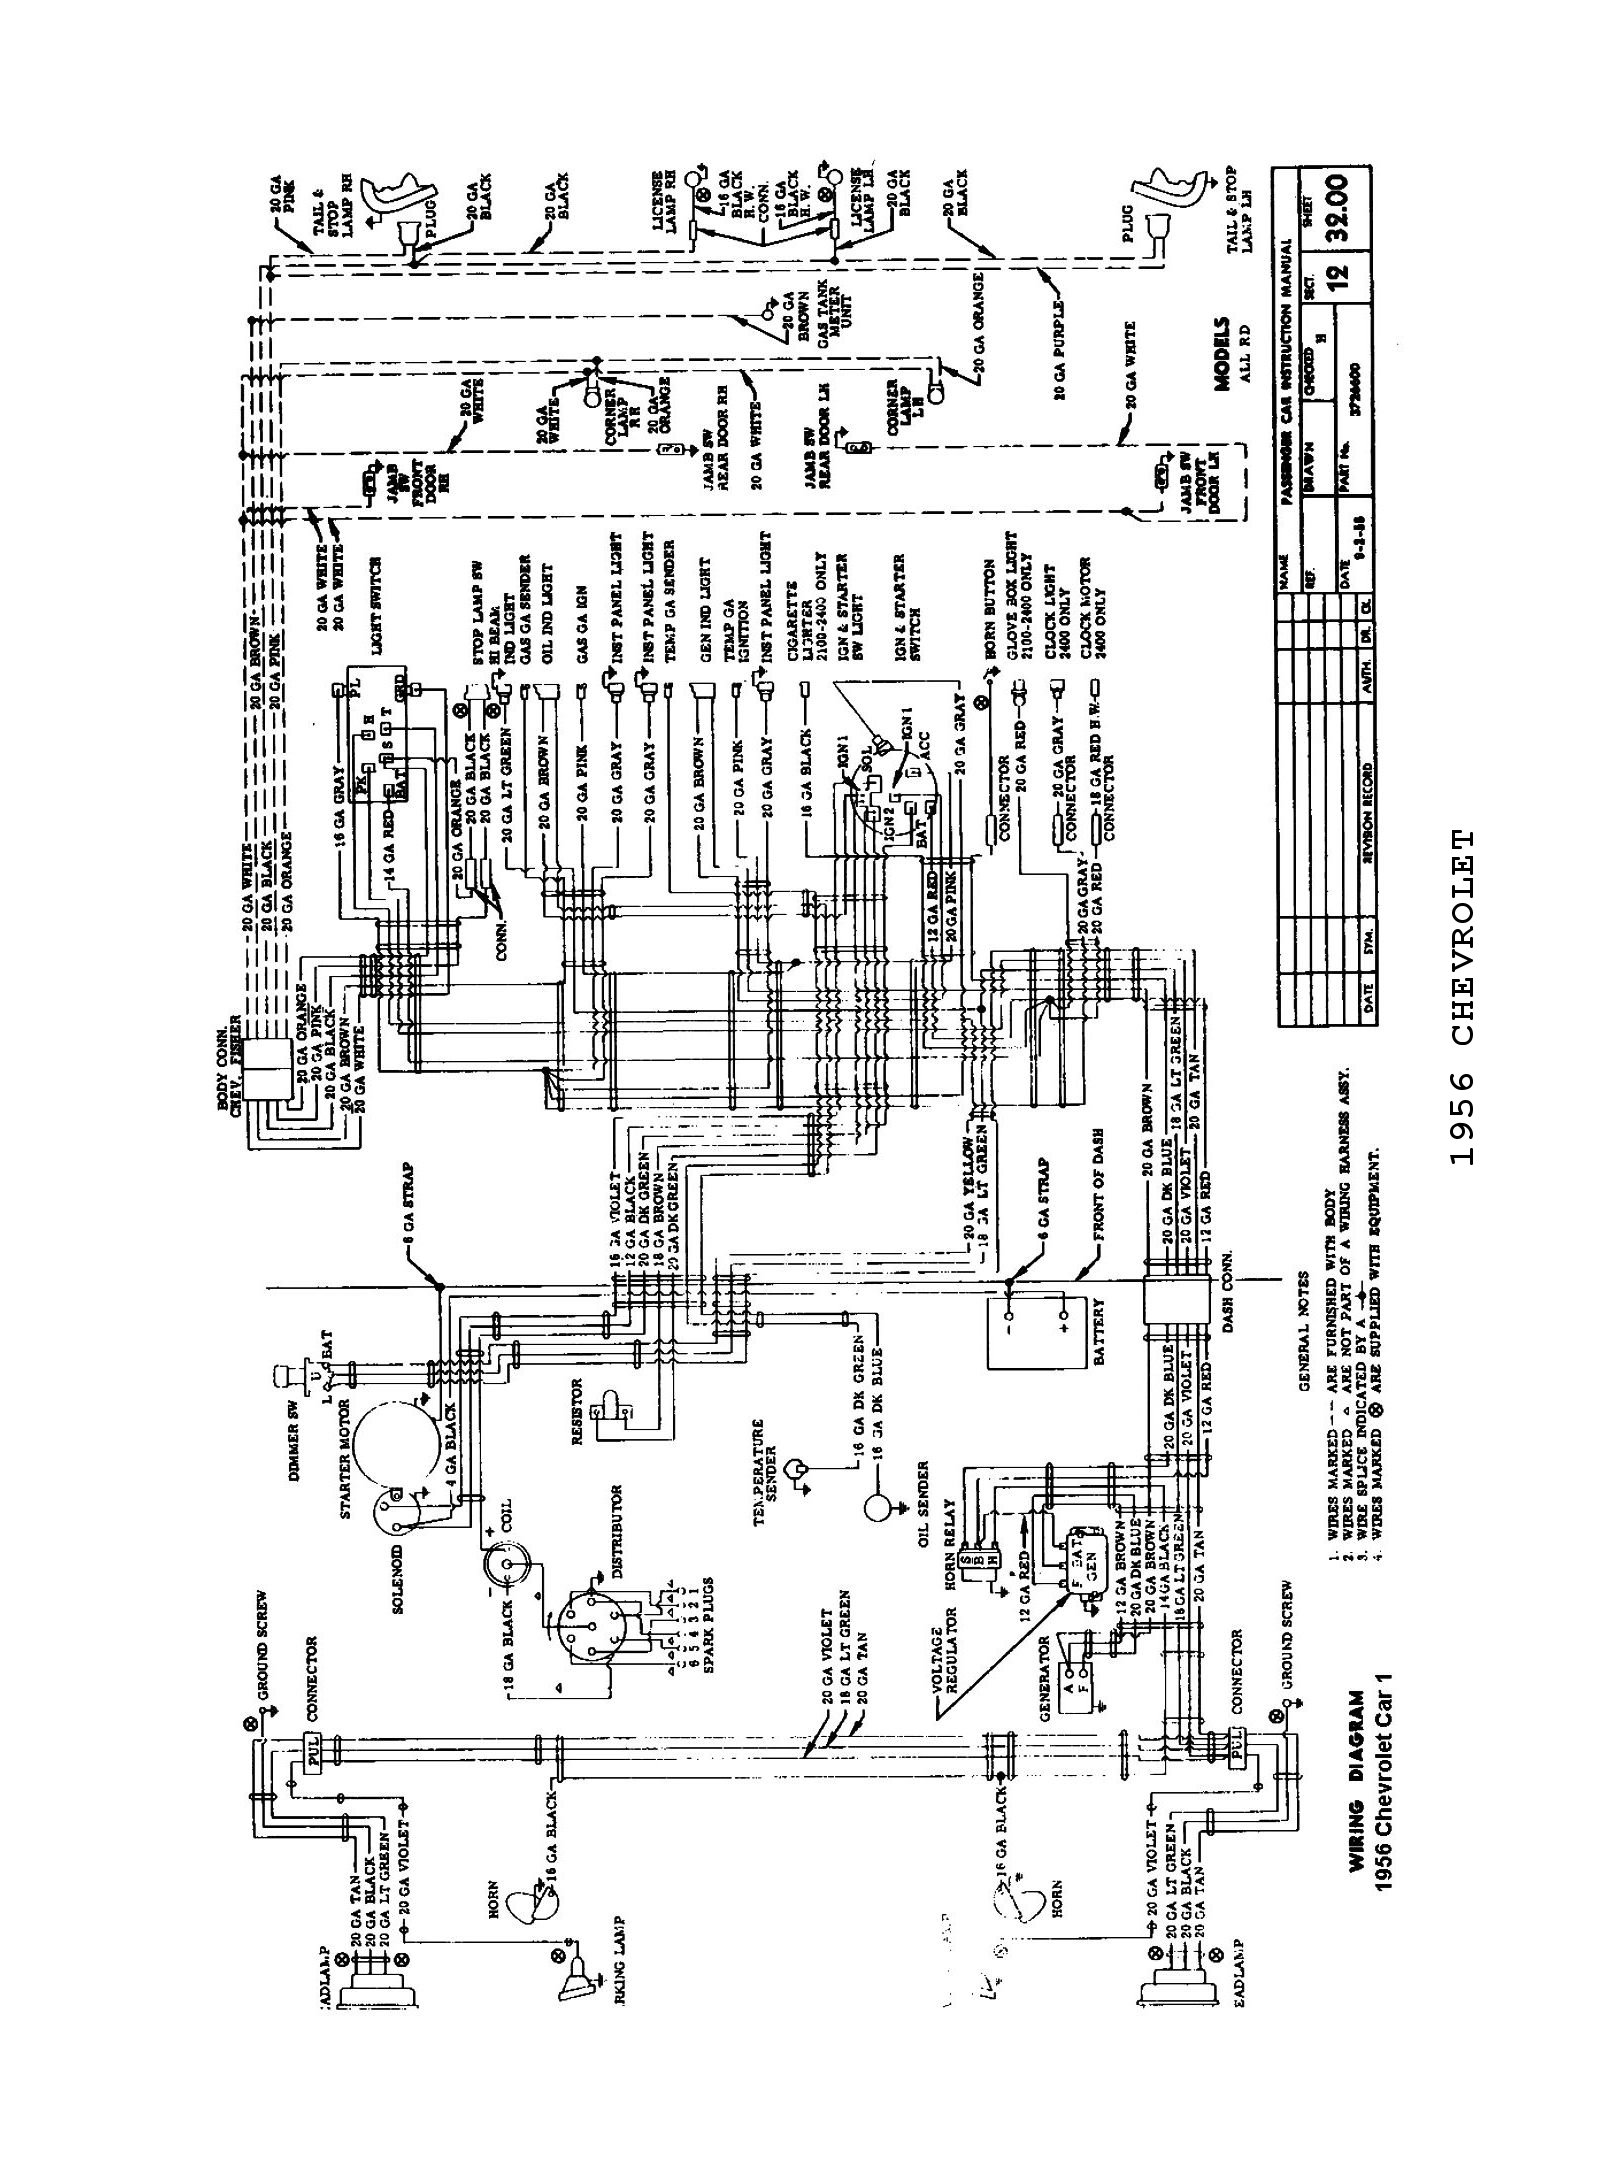 56 Chevy 3100 Wiring Diagram Books Of Wiring Diagram \u2022 1956 Chevrolet  Wiring Diagram 1956 Chevy Wiring Diagram